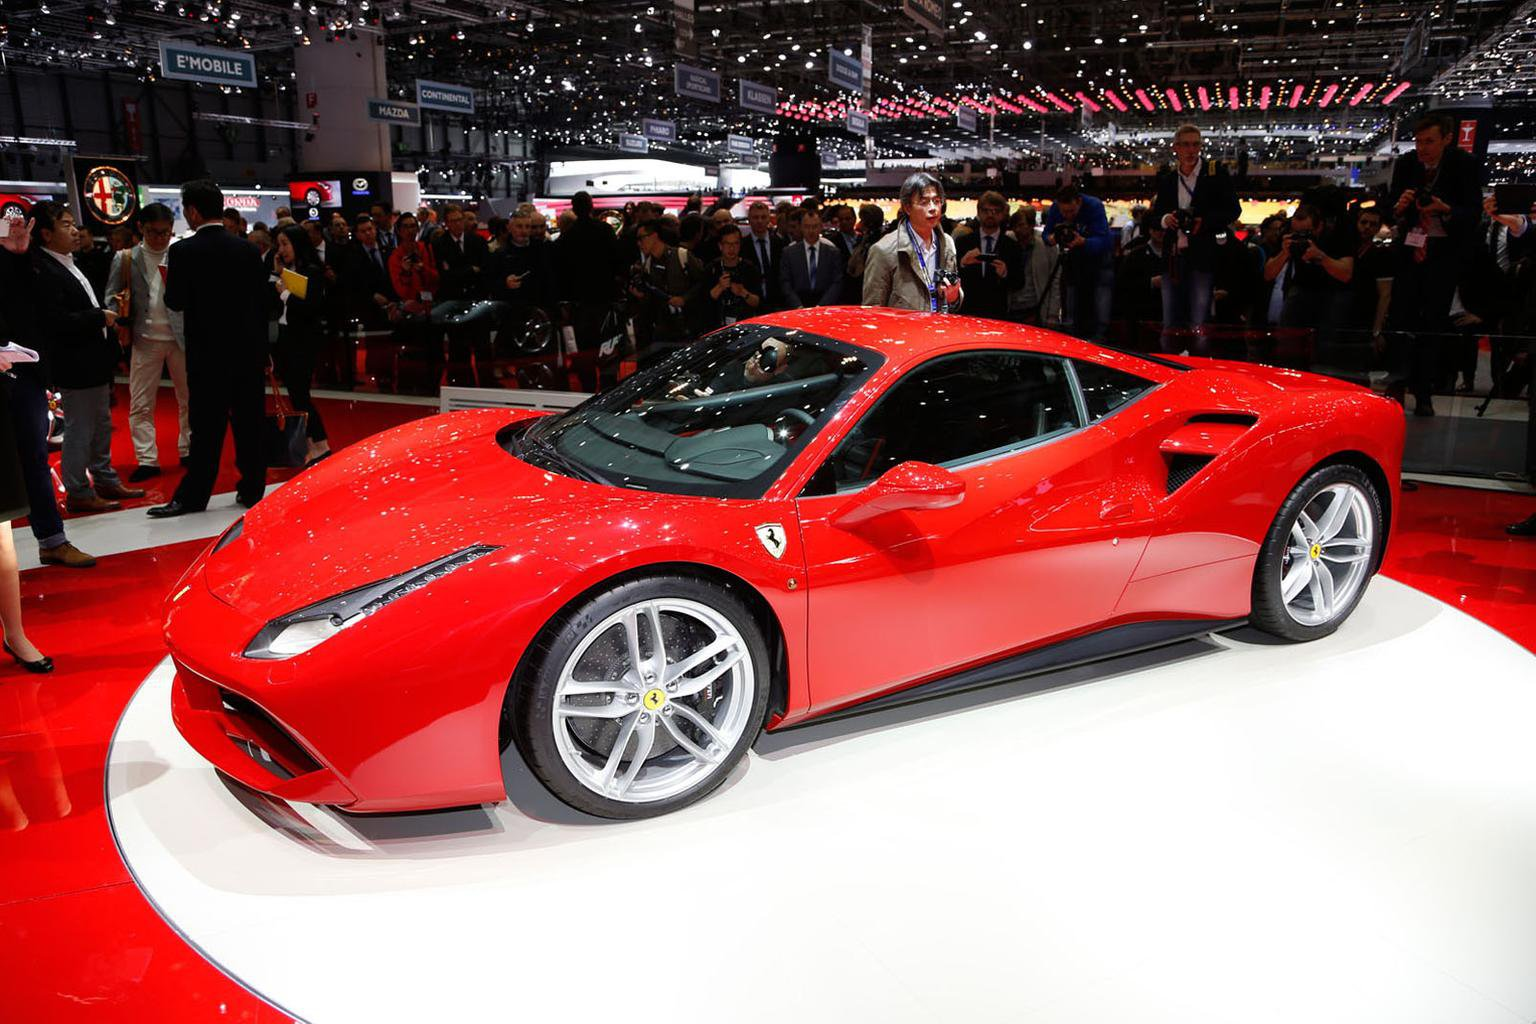 2015 Ferrari 488 GTB revealed - engine details and on-sale date